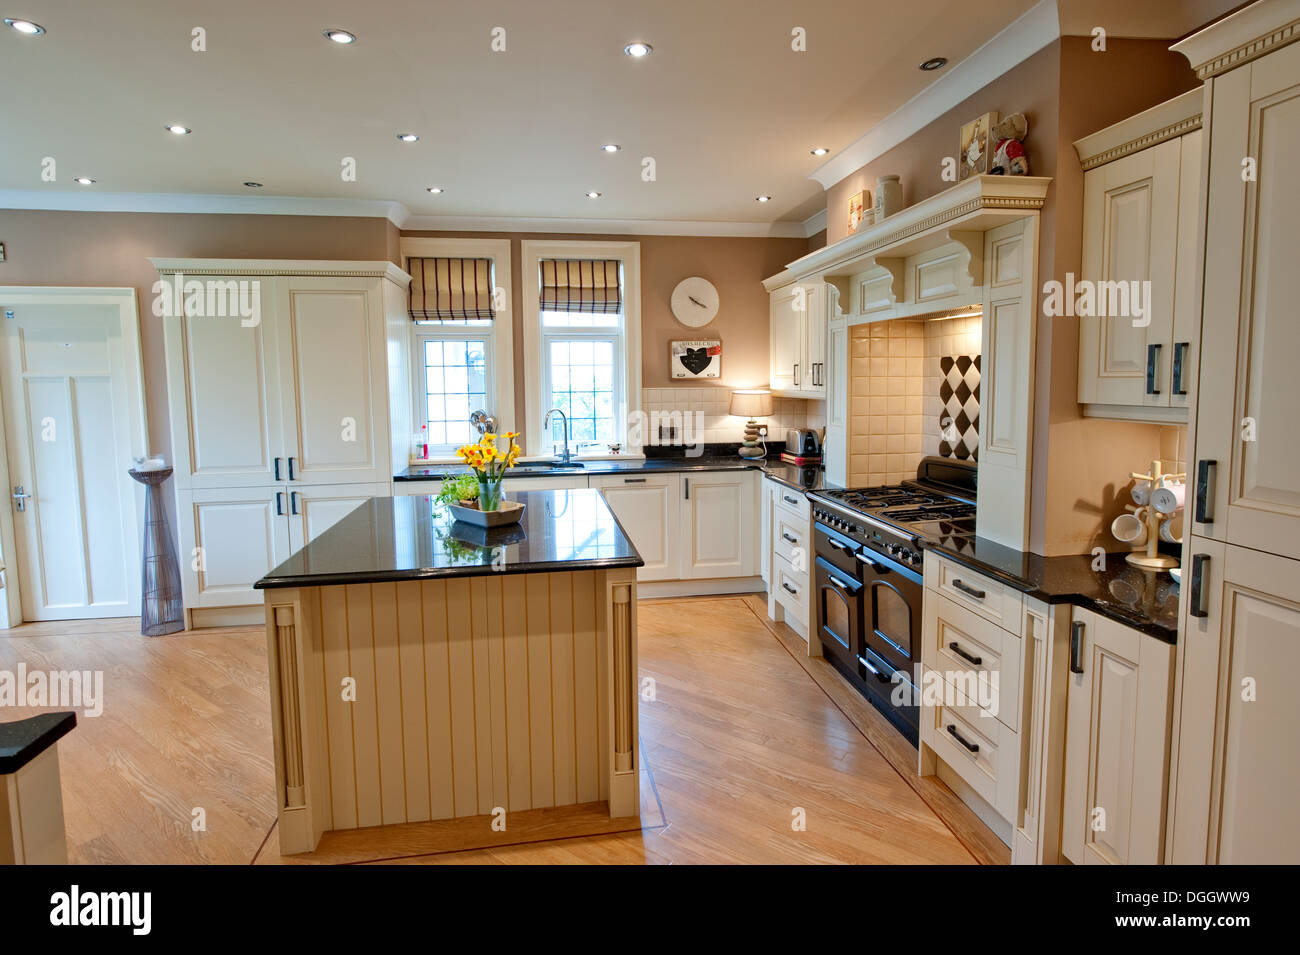 Aga Kitchen High Resolution Stock Photography And Images Alamy